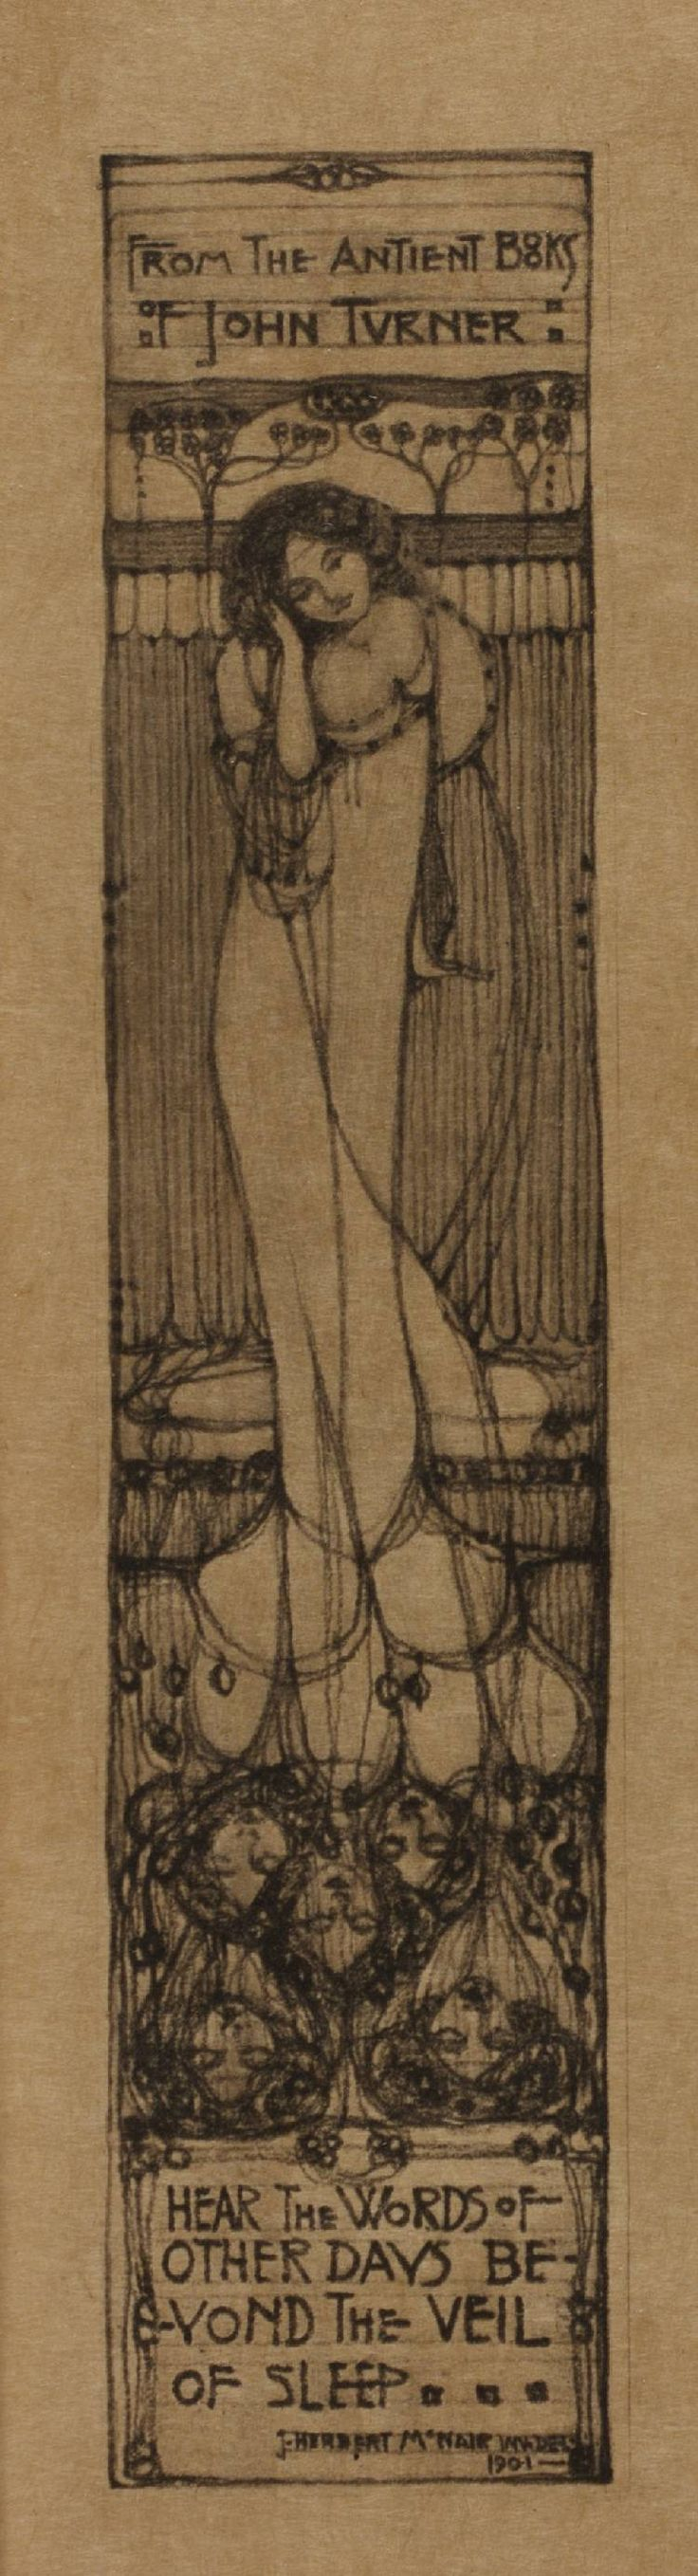 """McNair bookplate - from the Ancient Books of John Turner - """"hear the words of other days beyond the veil of sleep"""""""